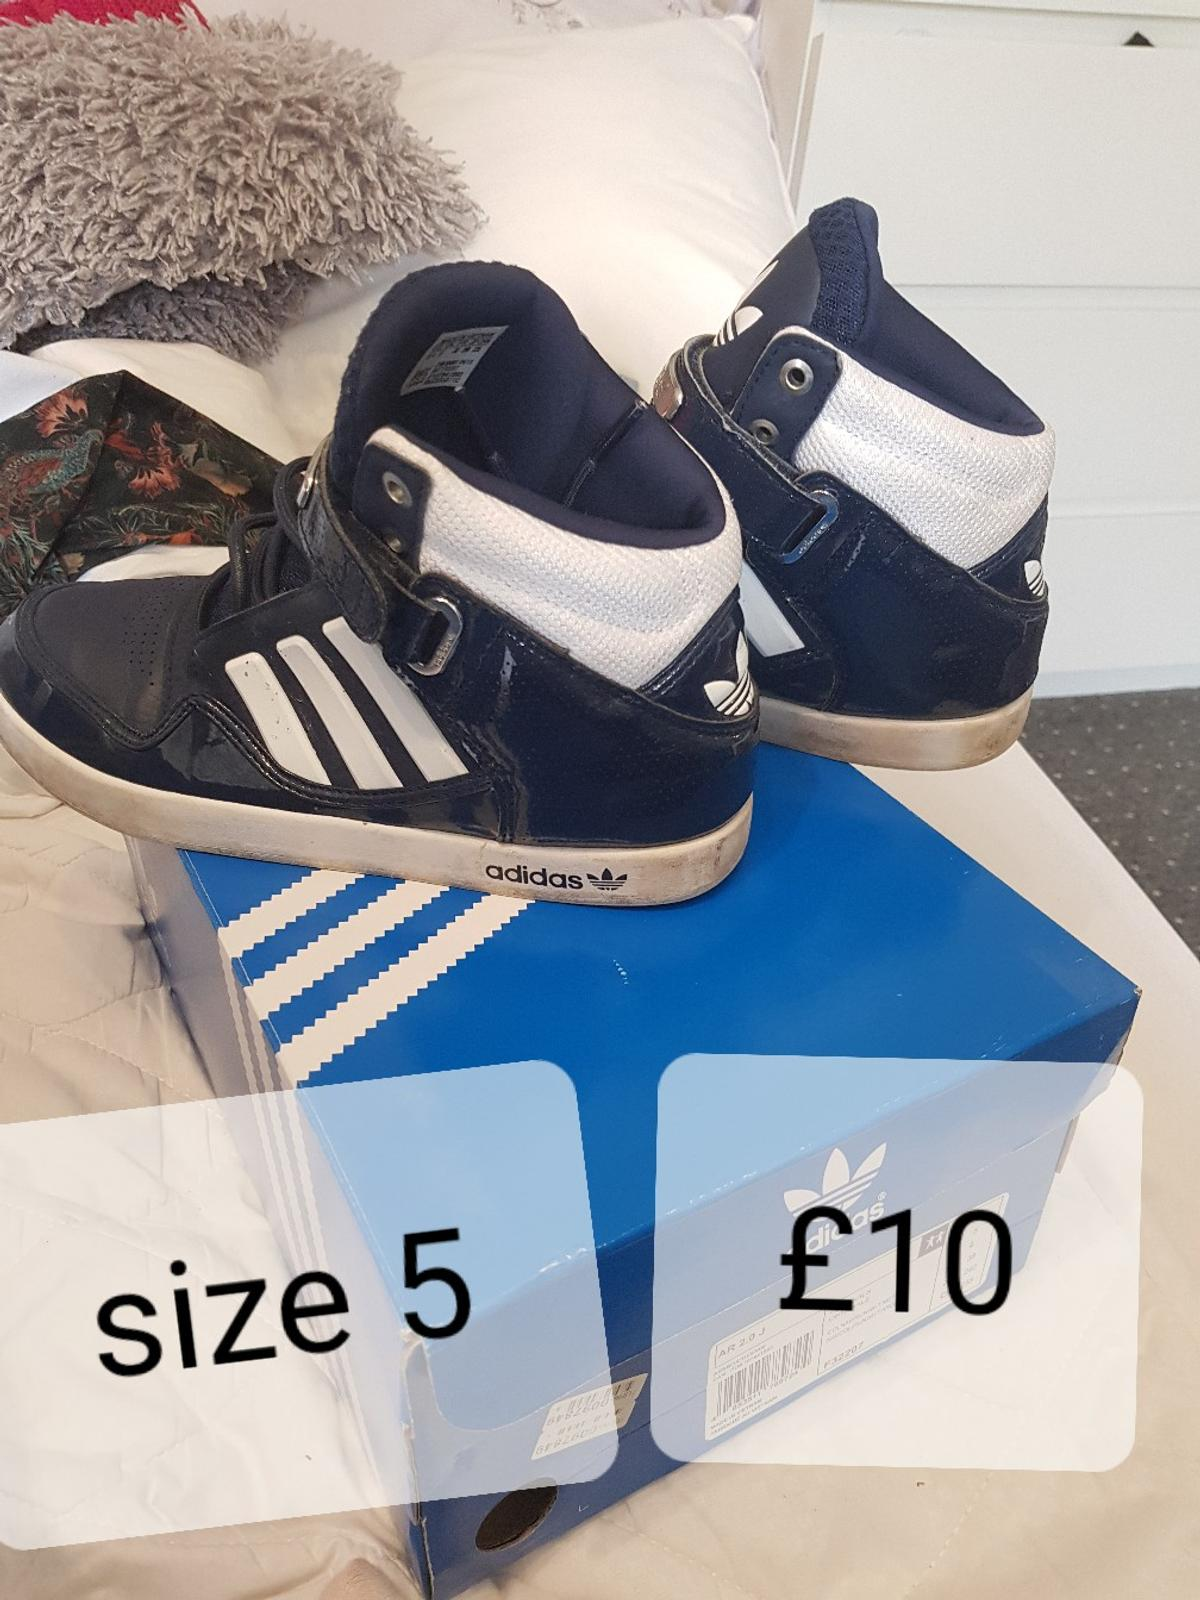 size 5 good condition